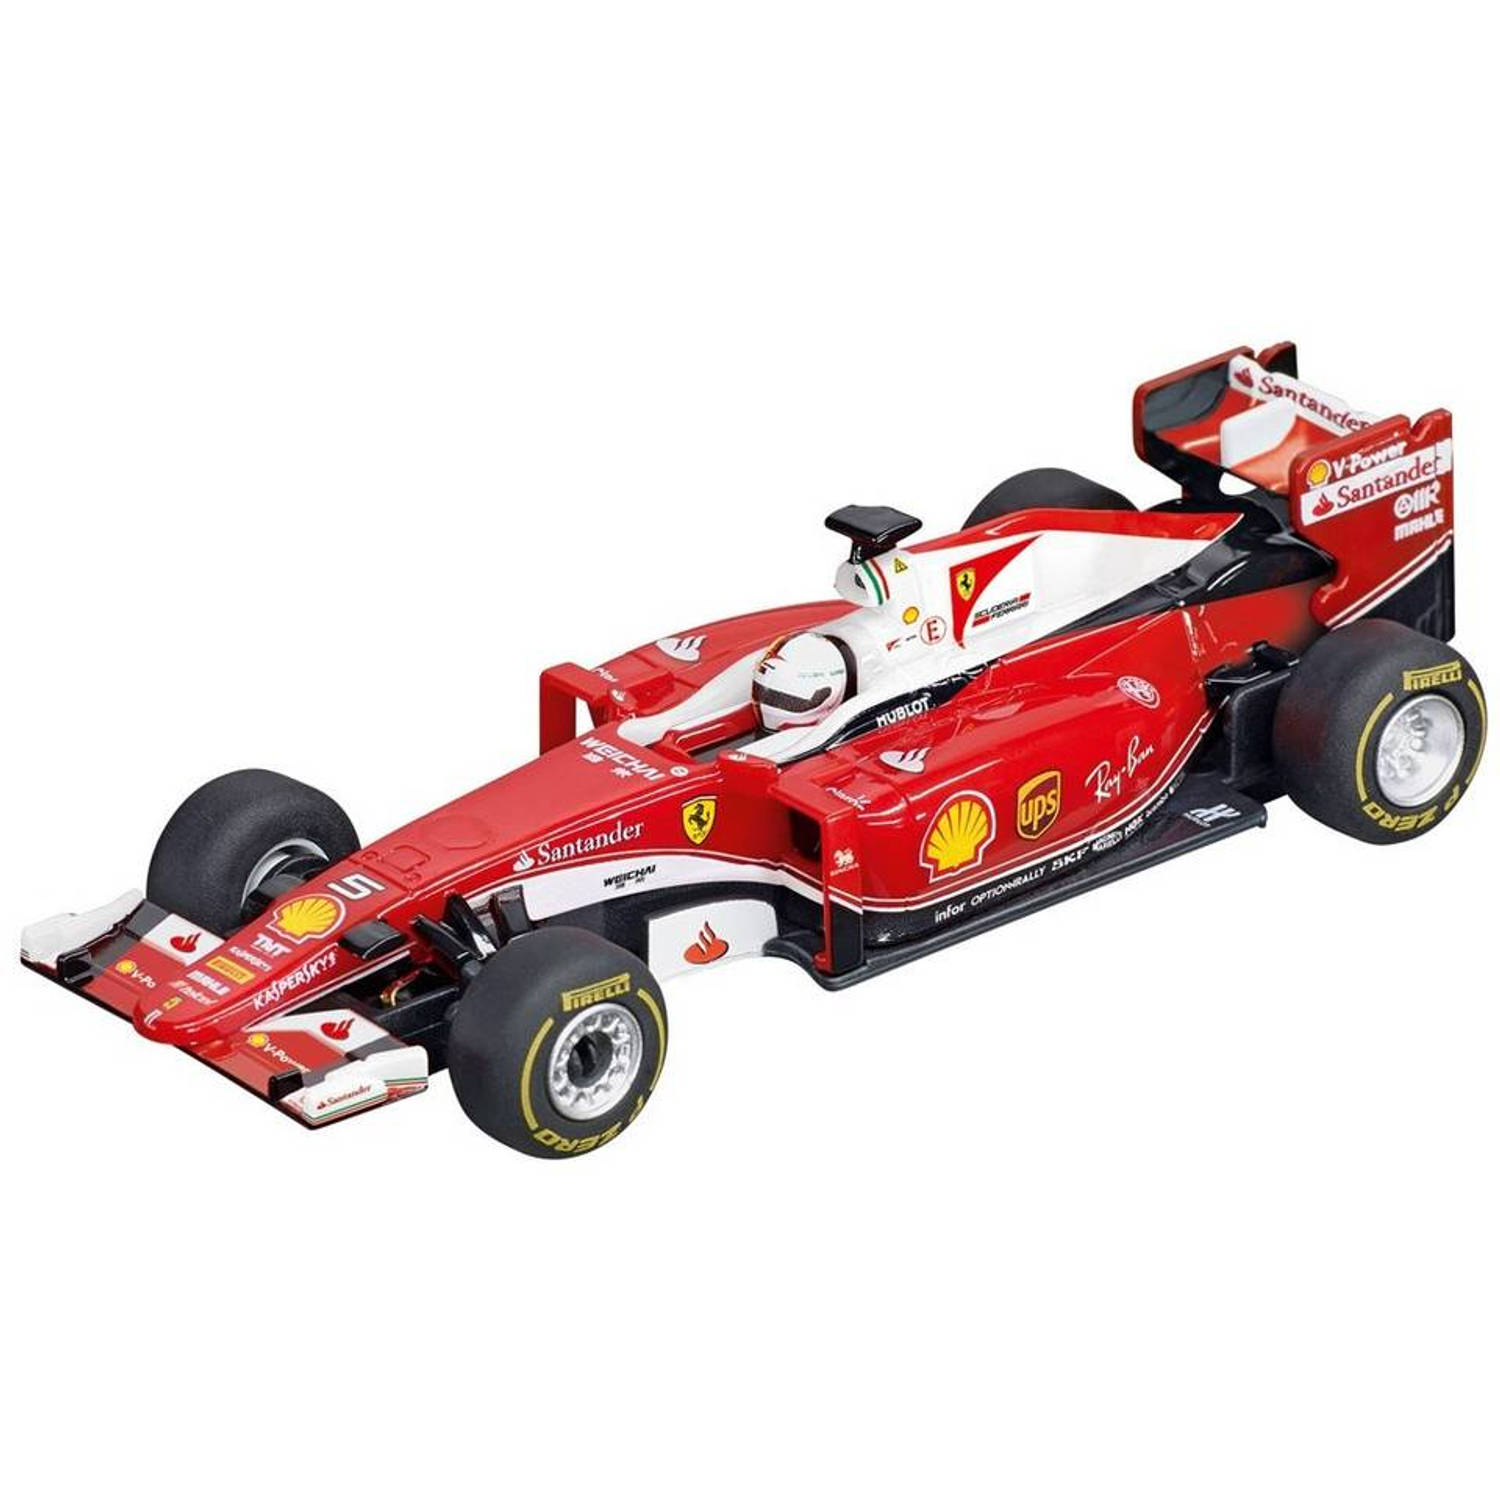 carrera go ferrari sf16 h formule 1 racebaanauto s vettel 5 blokker. Black Bedroom Furniture Sets. Home Design Ideas